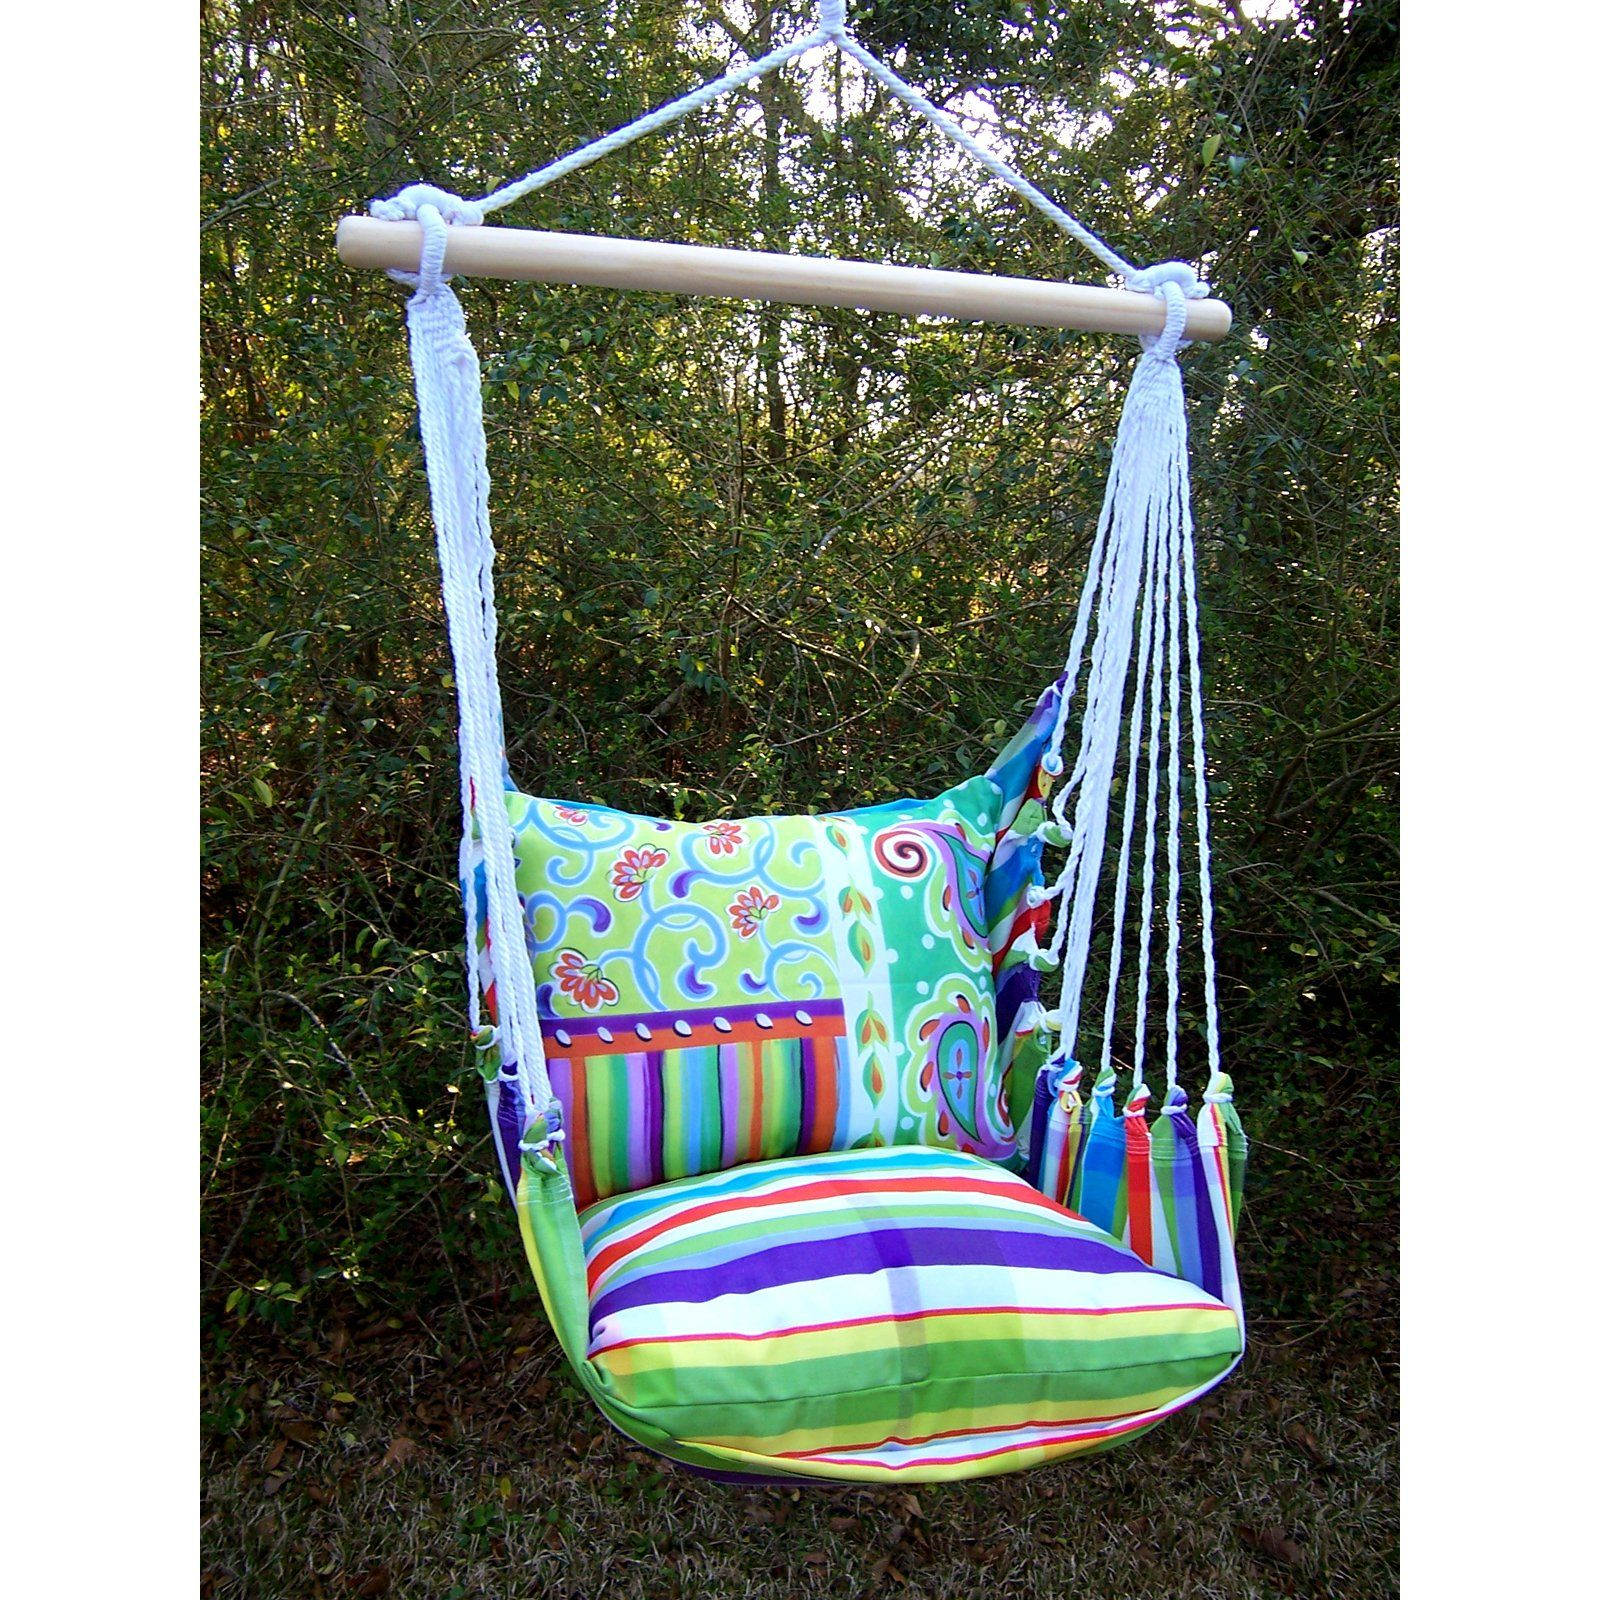 Medium image of fine  u0026 dandy paisley hammock chair swing set fine  u0026 dandy material no longer available  add elegance and refreshing style into your garden decor with the